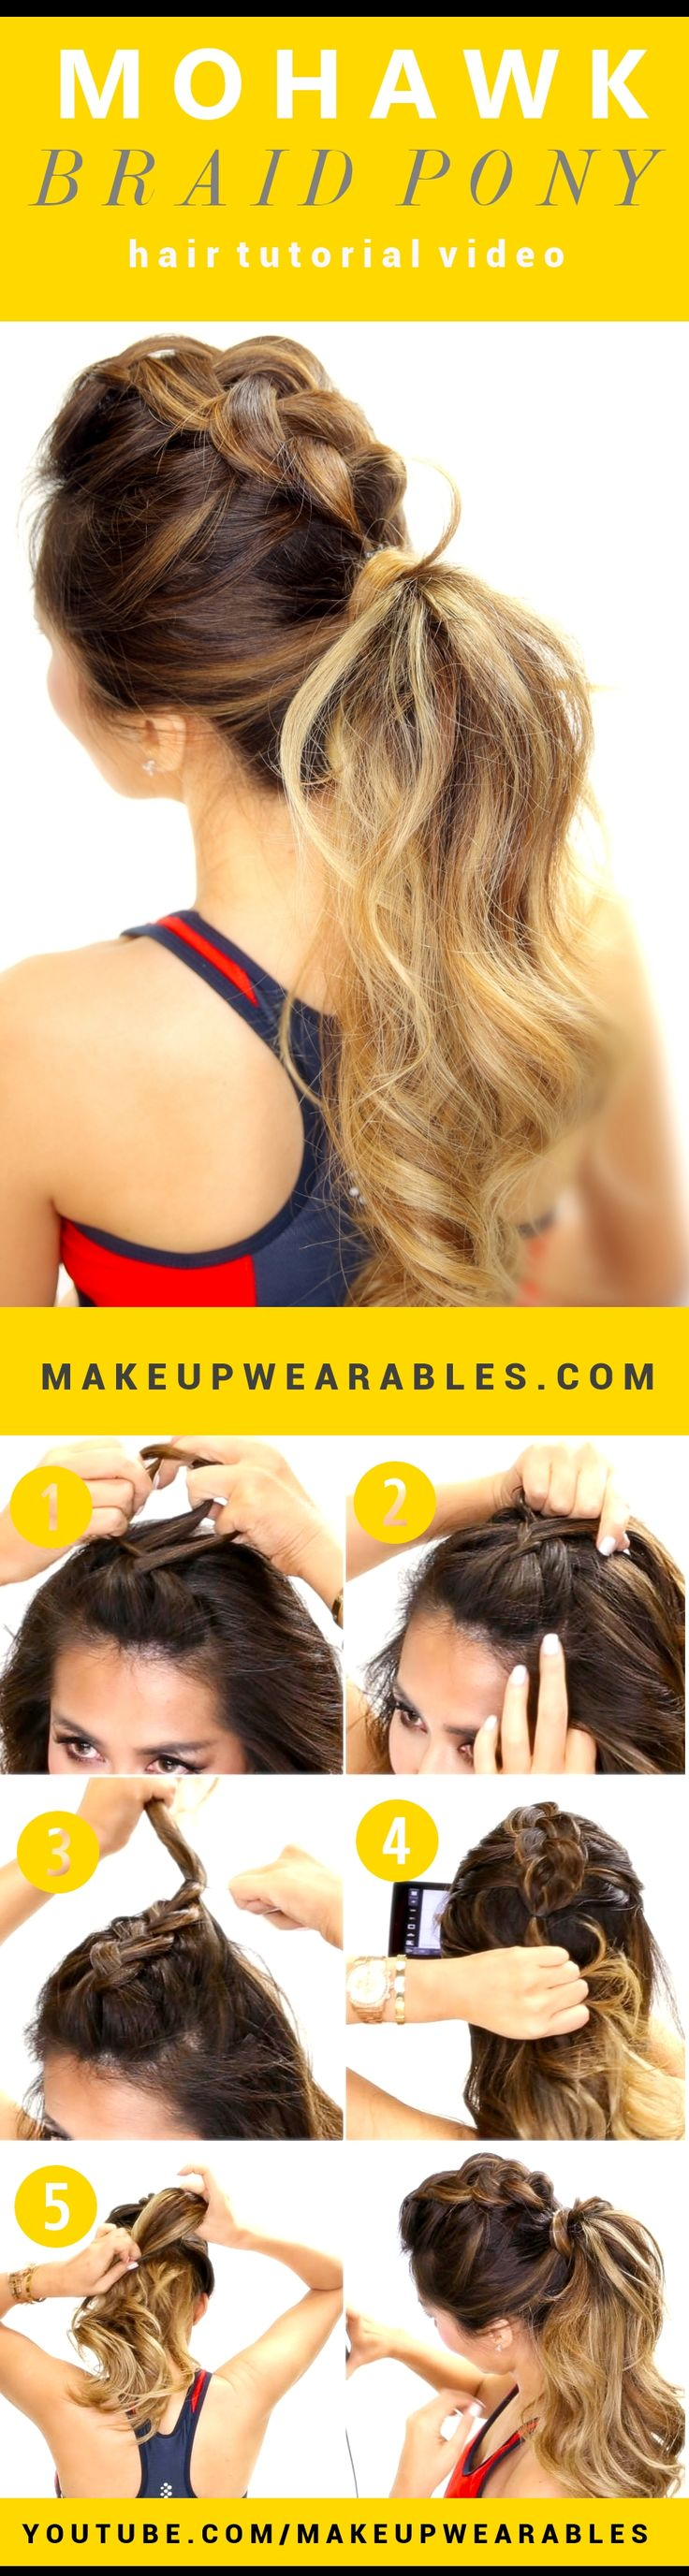 Mohawk Braid Ponytail | Cute Hairstyles